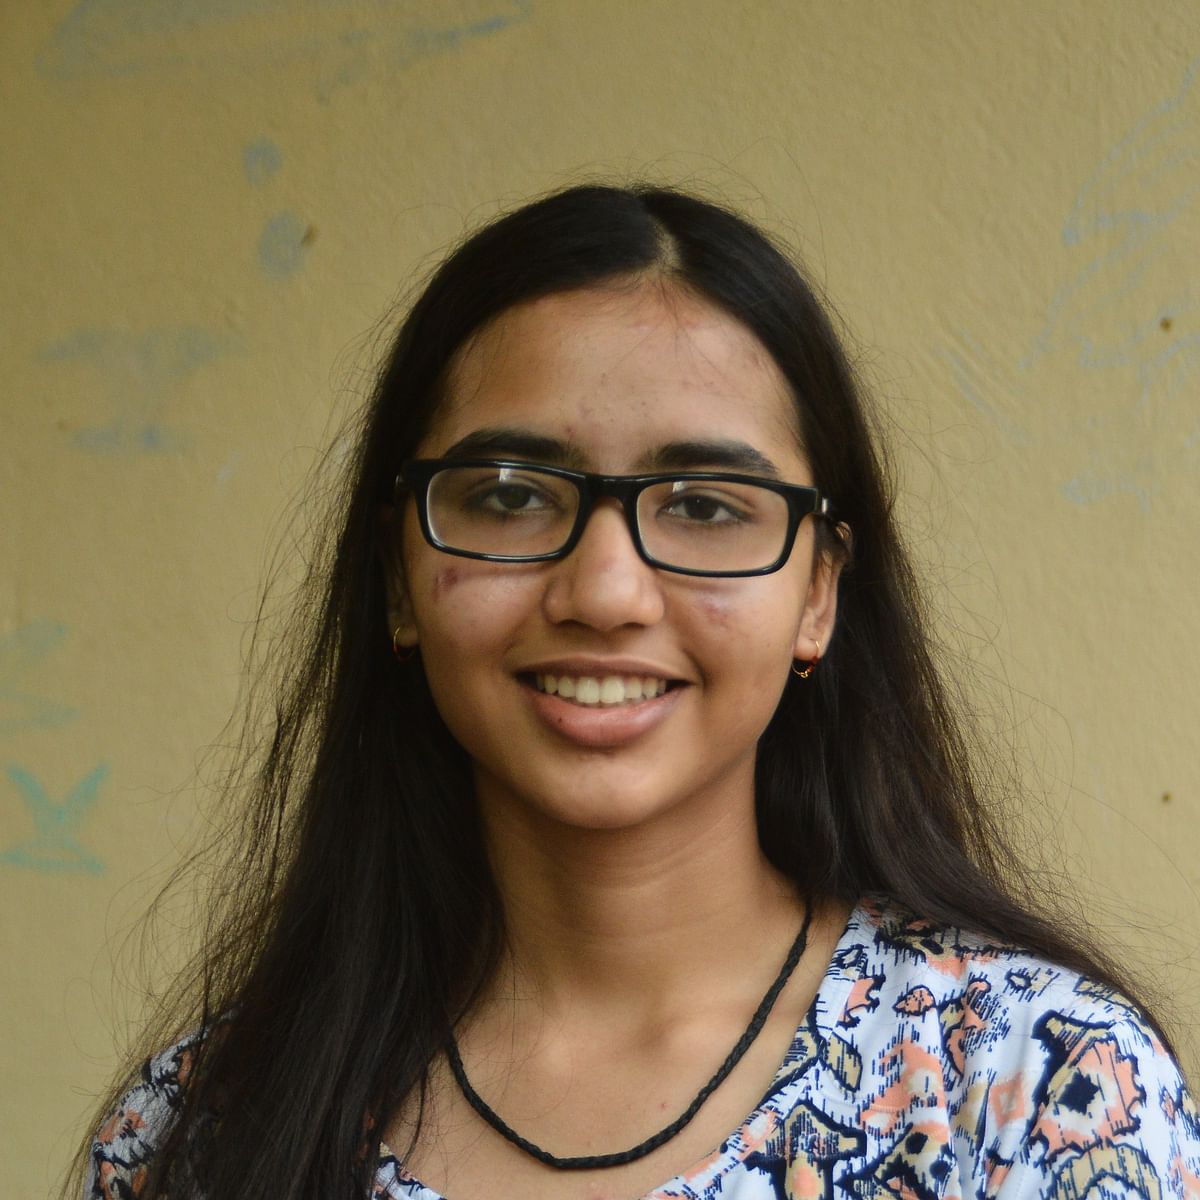 MP Board Result: Rajnandini Saxena is Ujjain district topper of class 10